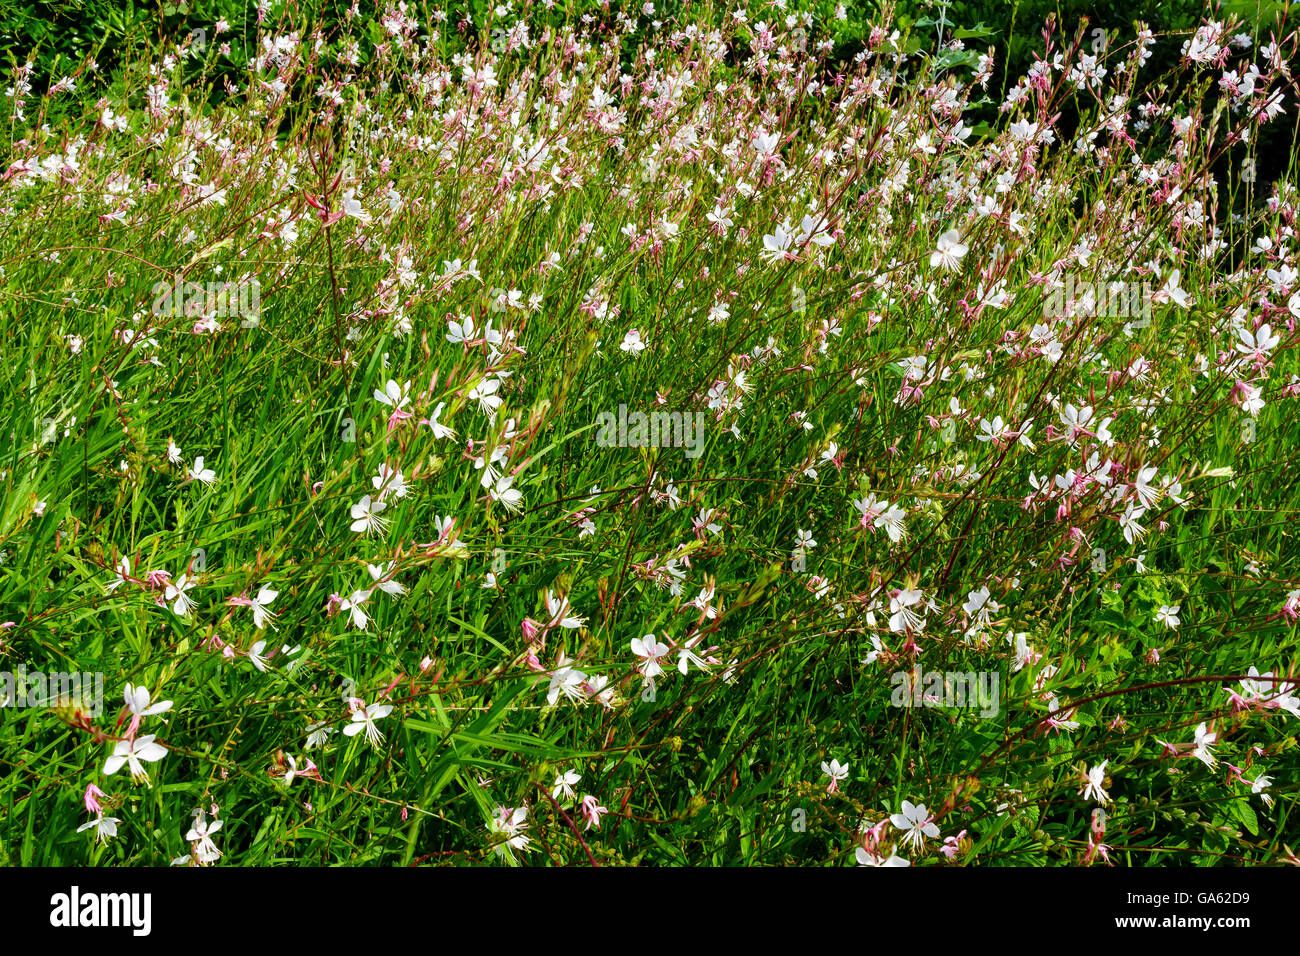 Small pink flowers Gaura lindheimeri 'Sparkle White' in a garden. - Stock Image